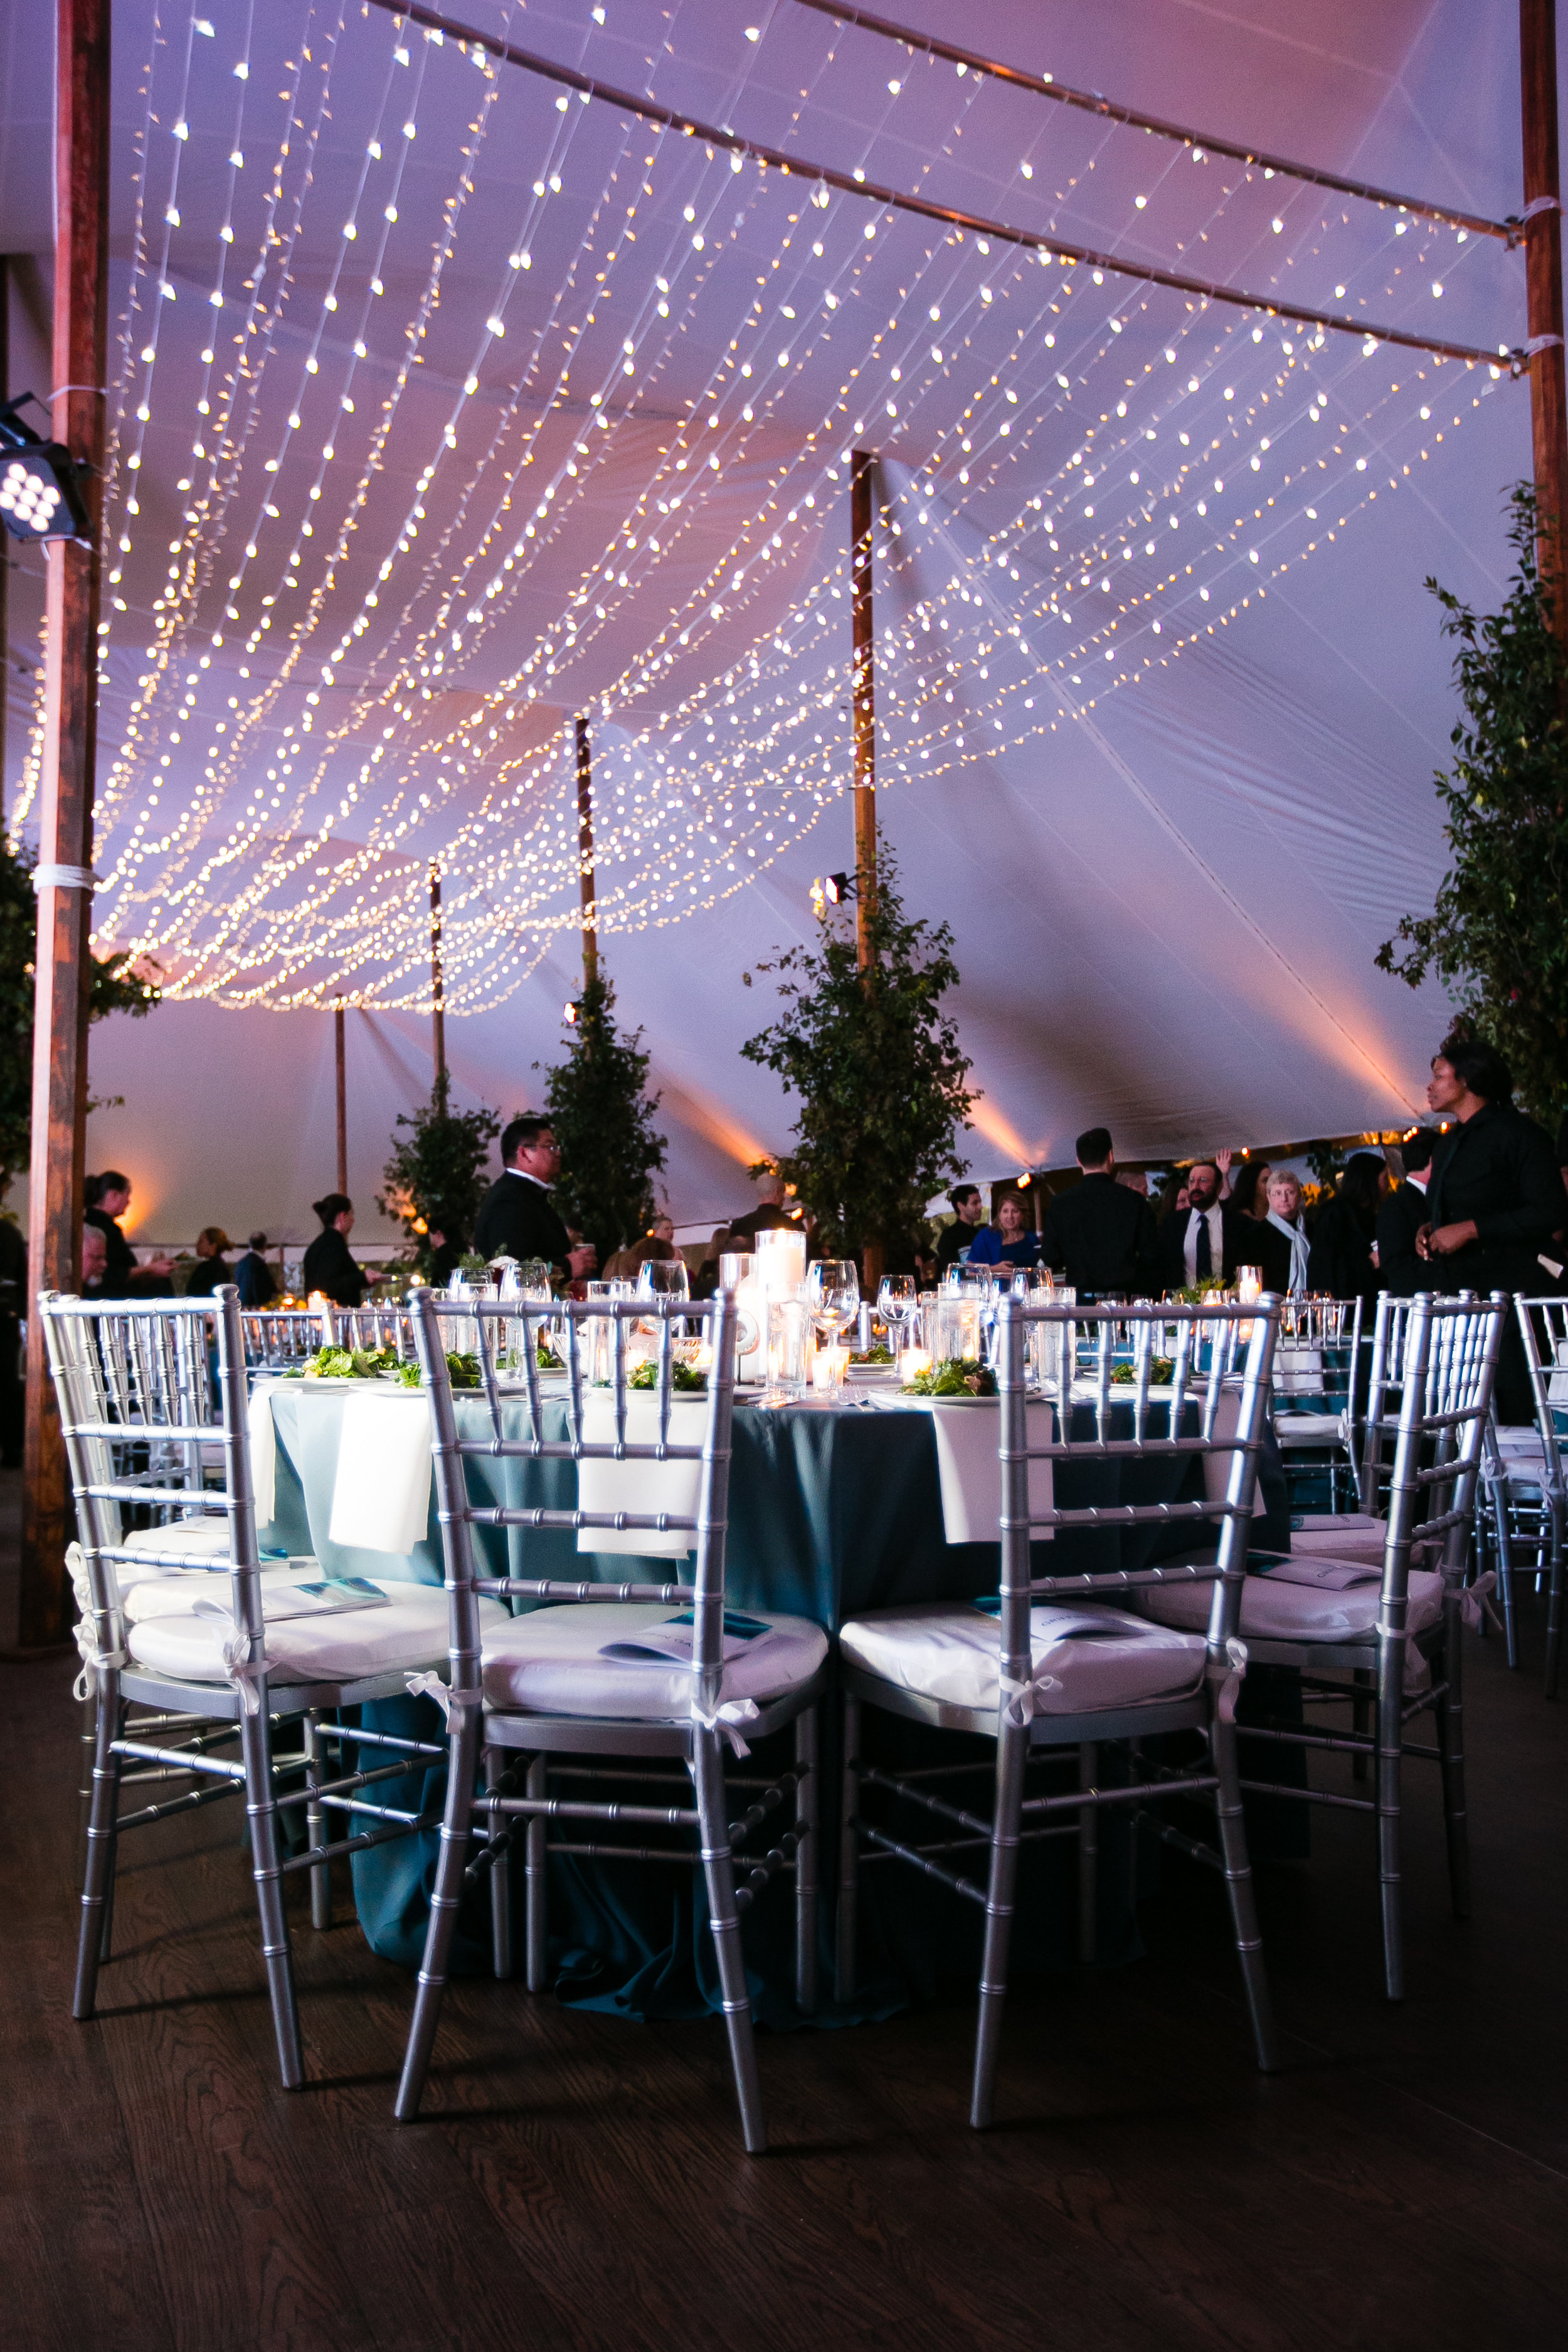 Corporate Event Planner Gala Connecticut New York Philadelphia0-63.jpg